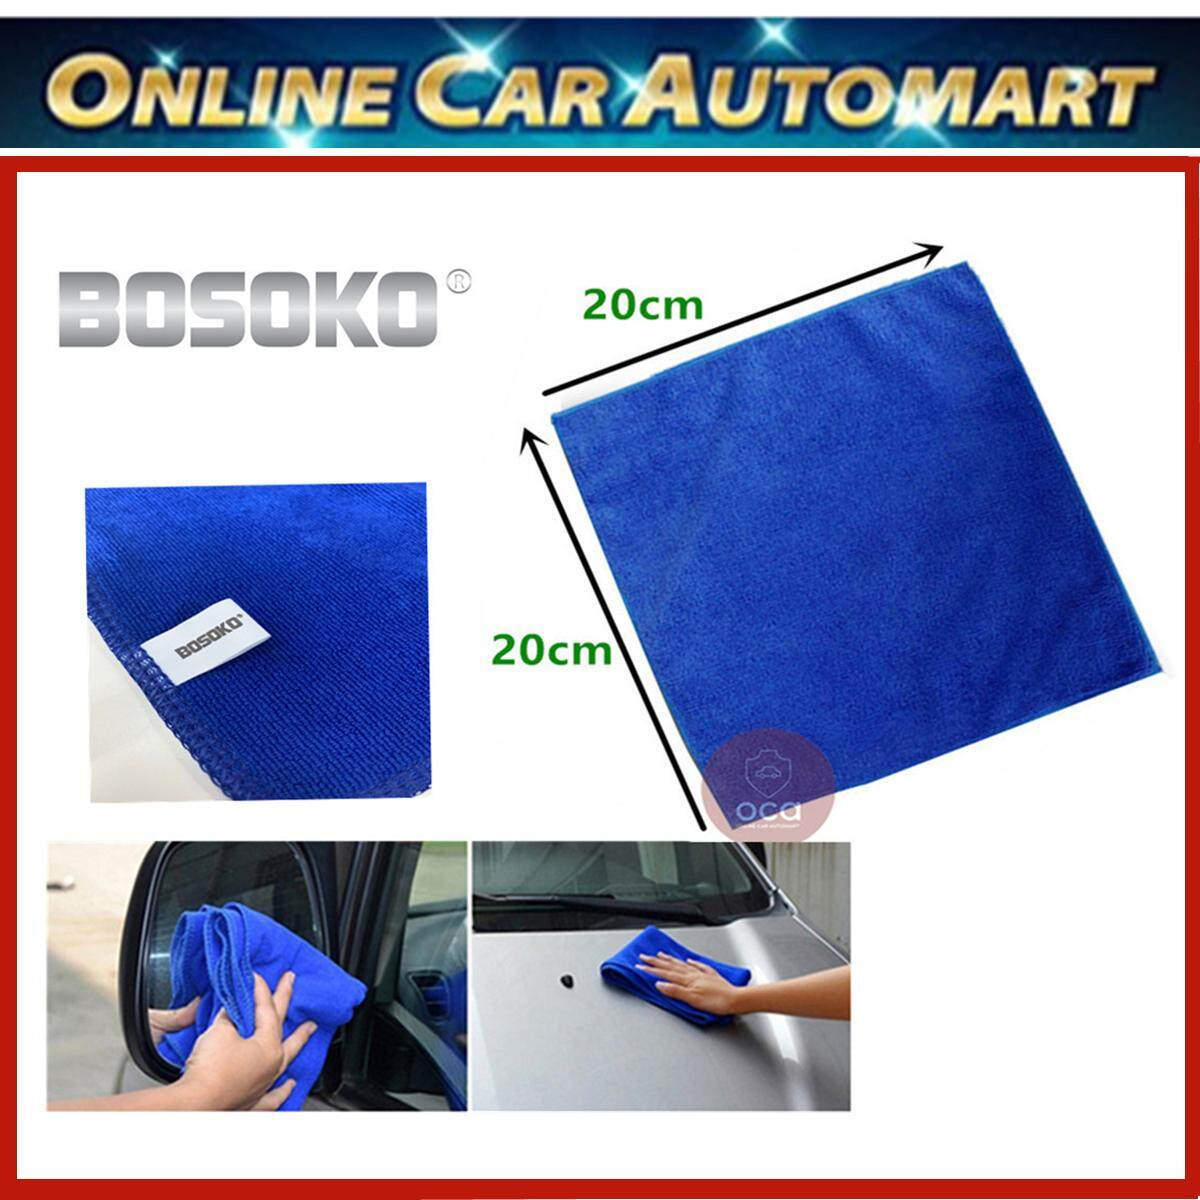 (BUY RM 30 FREE SHIPPING) 1 x BOSOKO Soft Absorbent Wash Cloth Car Auto Care Microfiber Cleaning Towels (Blue) 20cm x 20cm